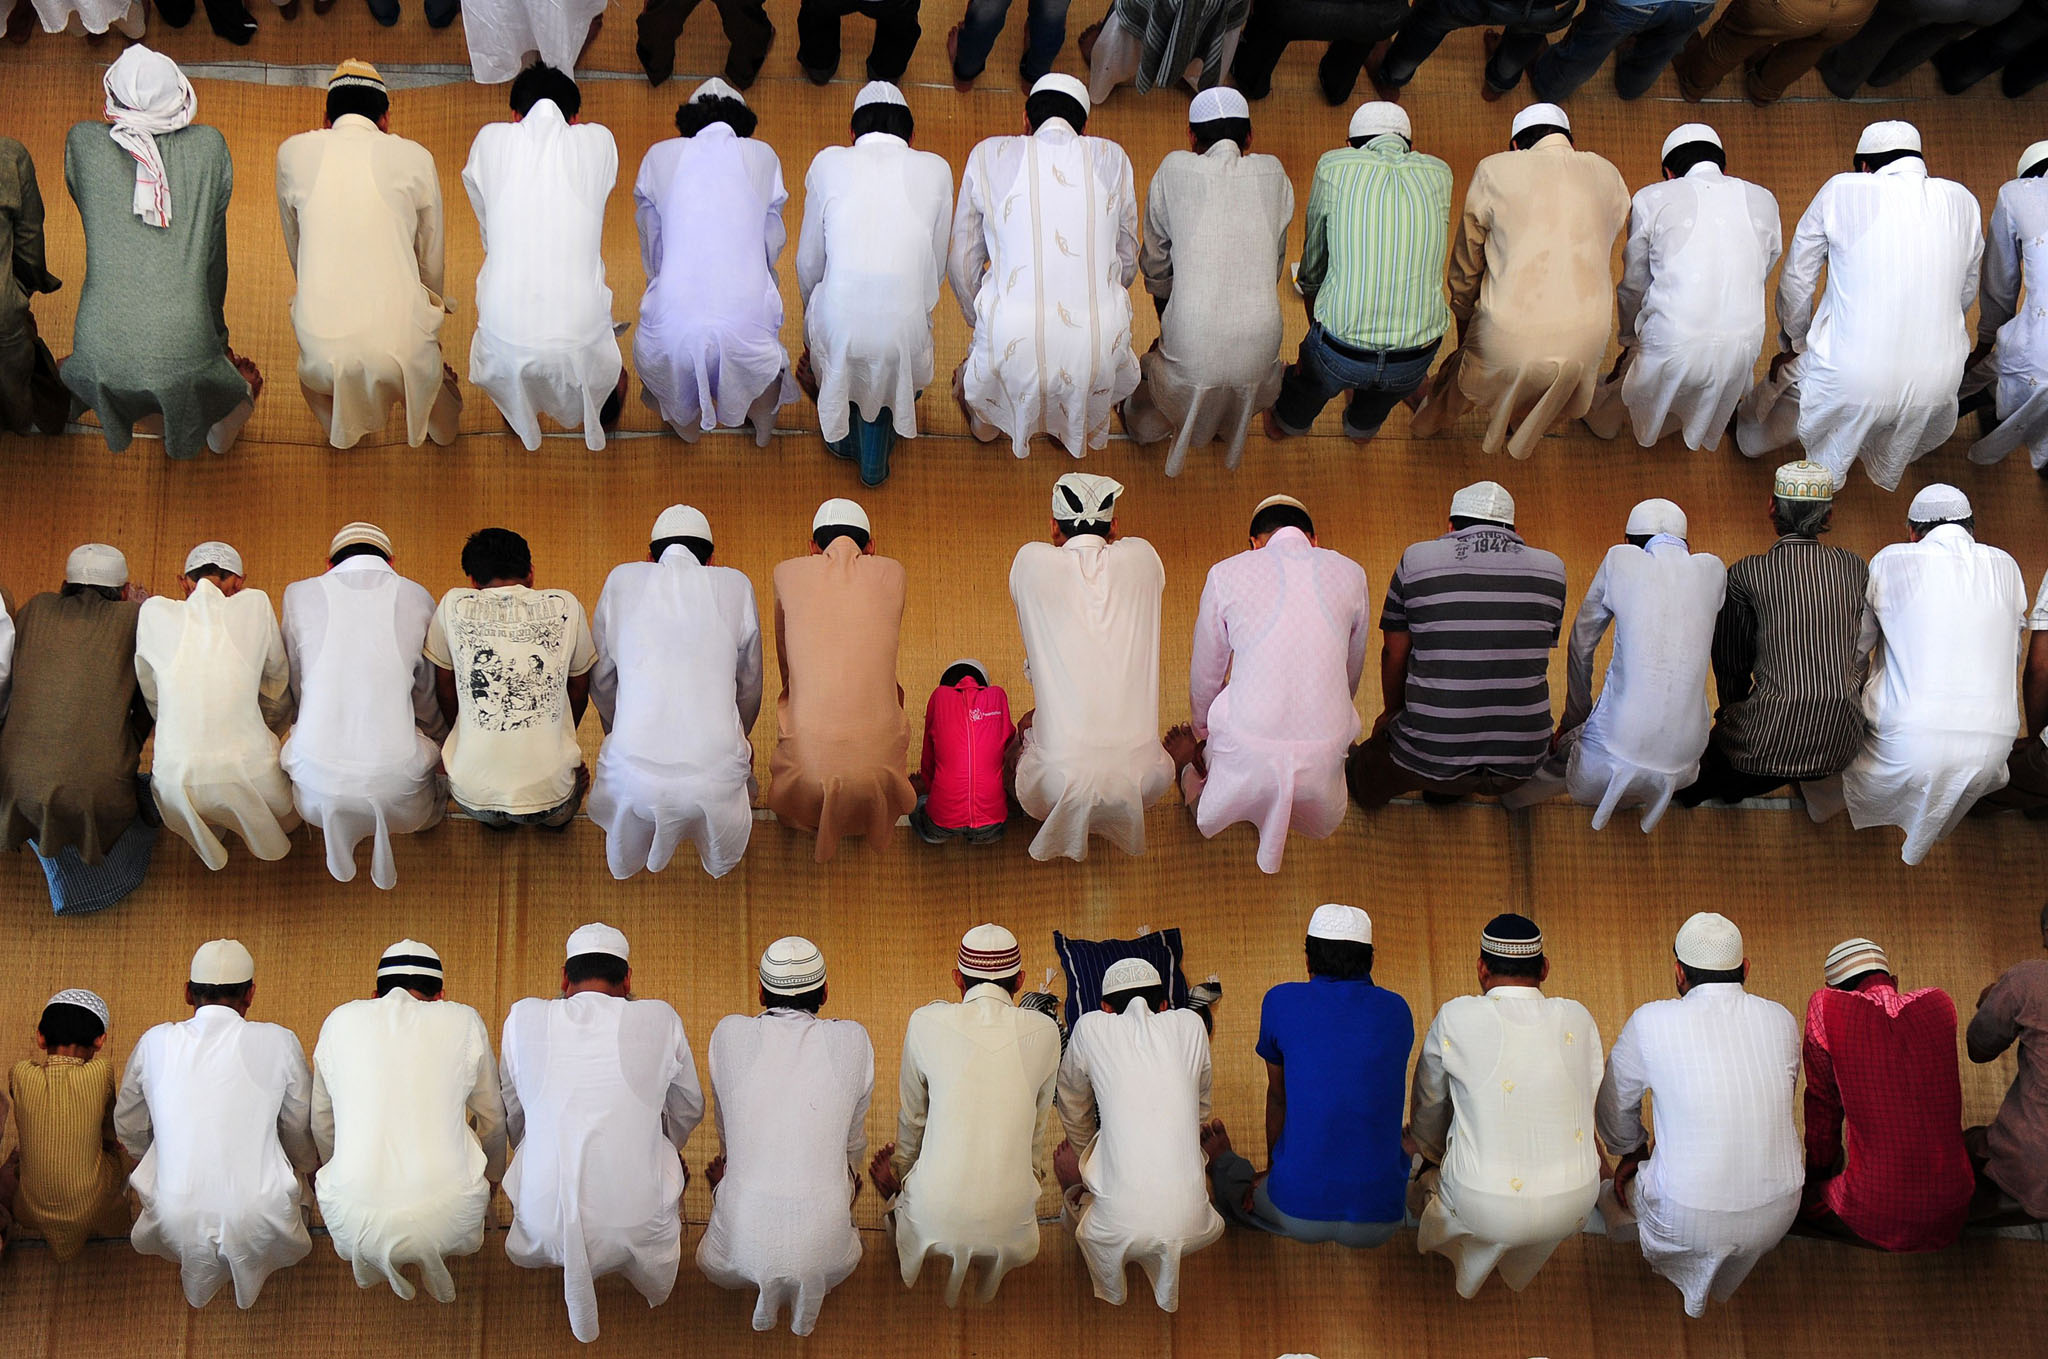 Indian Muslim devotees offer Friday prayers at the Vasi Ullah mosque on the first Friday of Ramadan in Allahabad.